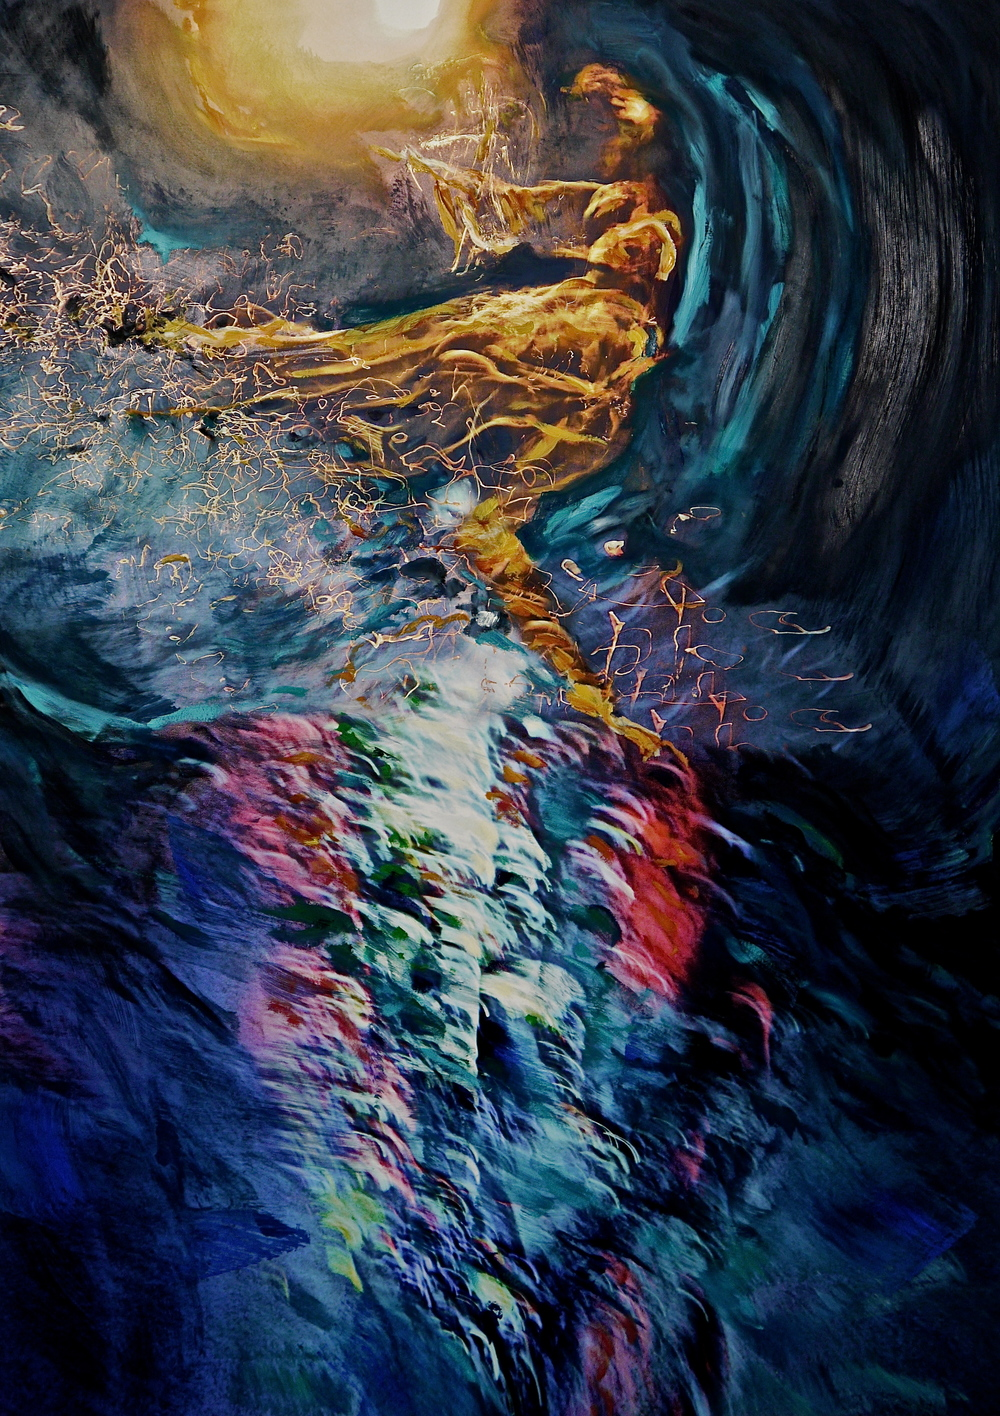 Andrew Hart Adler  'Aqua Lady VI'  Mixed media on canvas  192 x 137 cm